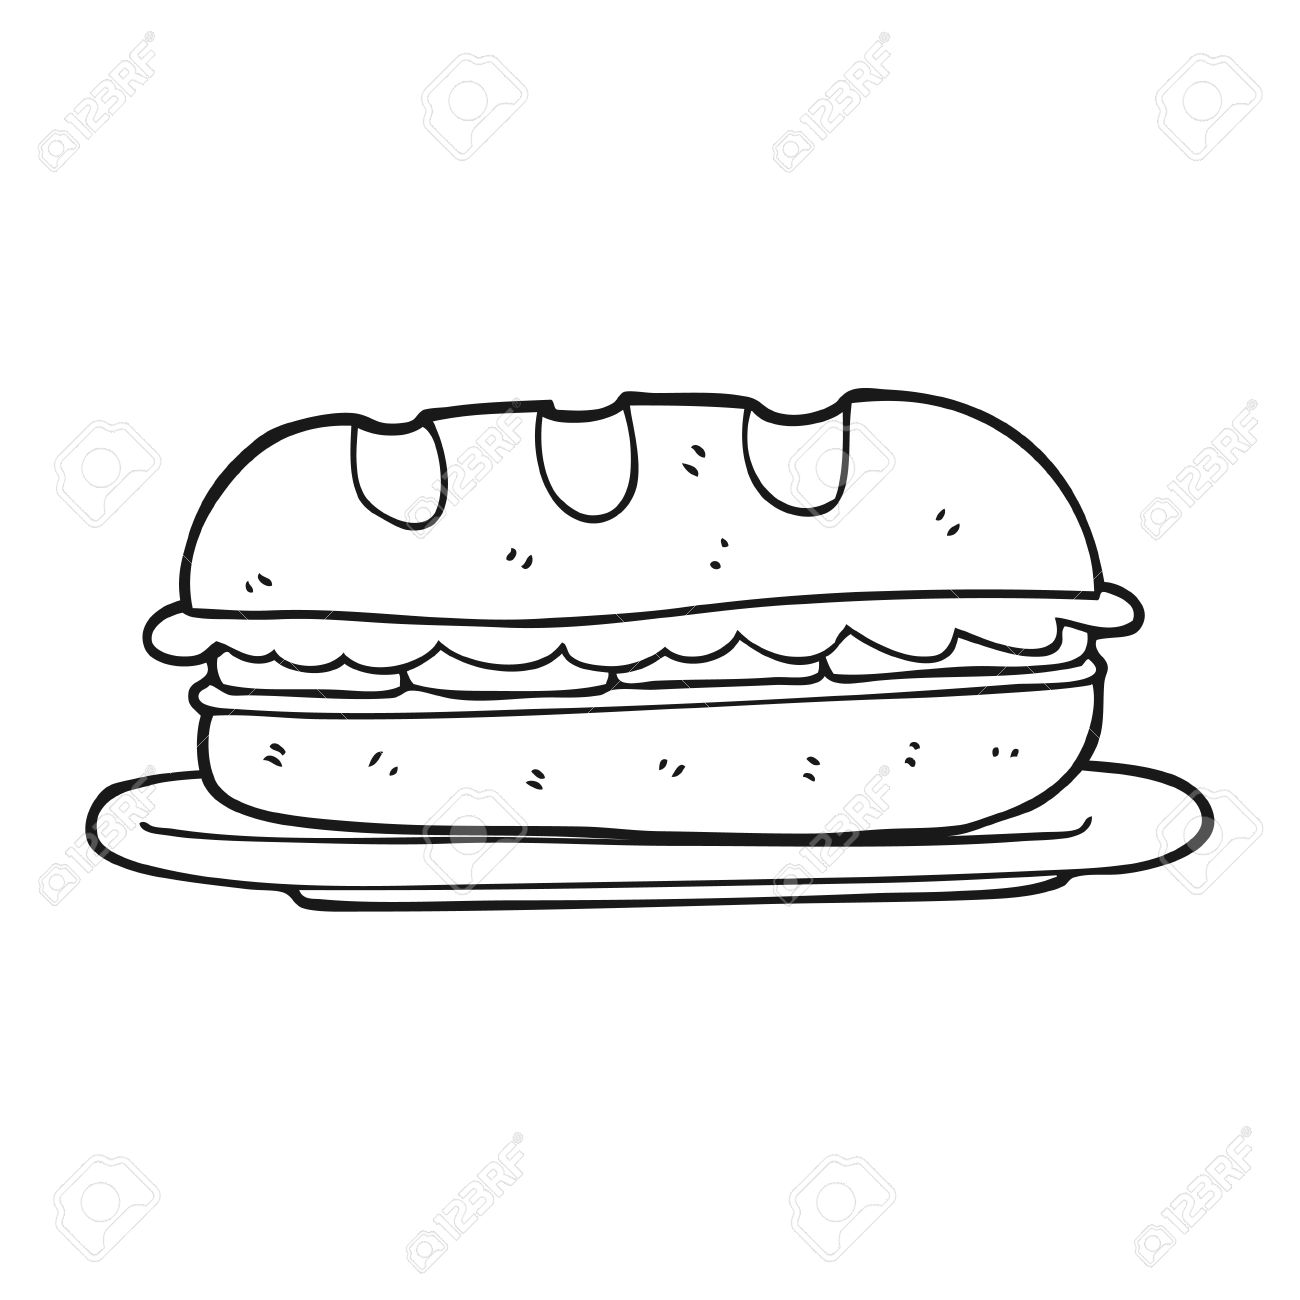 freehand drawn black and white cartoon sub sandwich royalty free cliparts vectors and stock illustration image 53102682 freehand drawn black and white cartoon sub sandwich